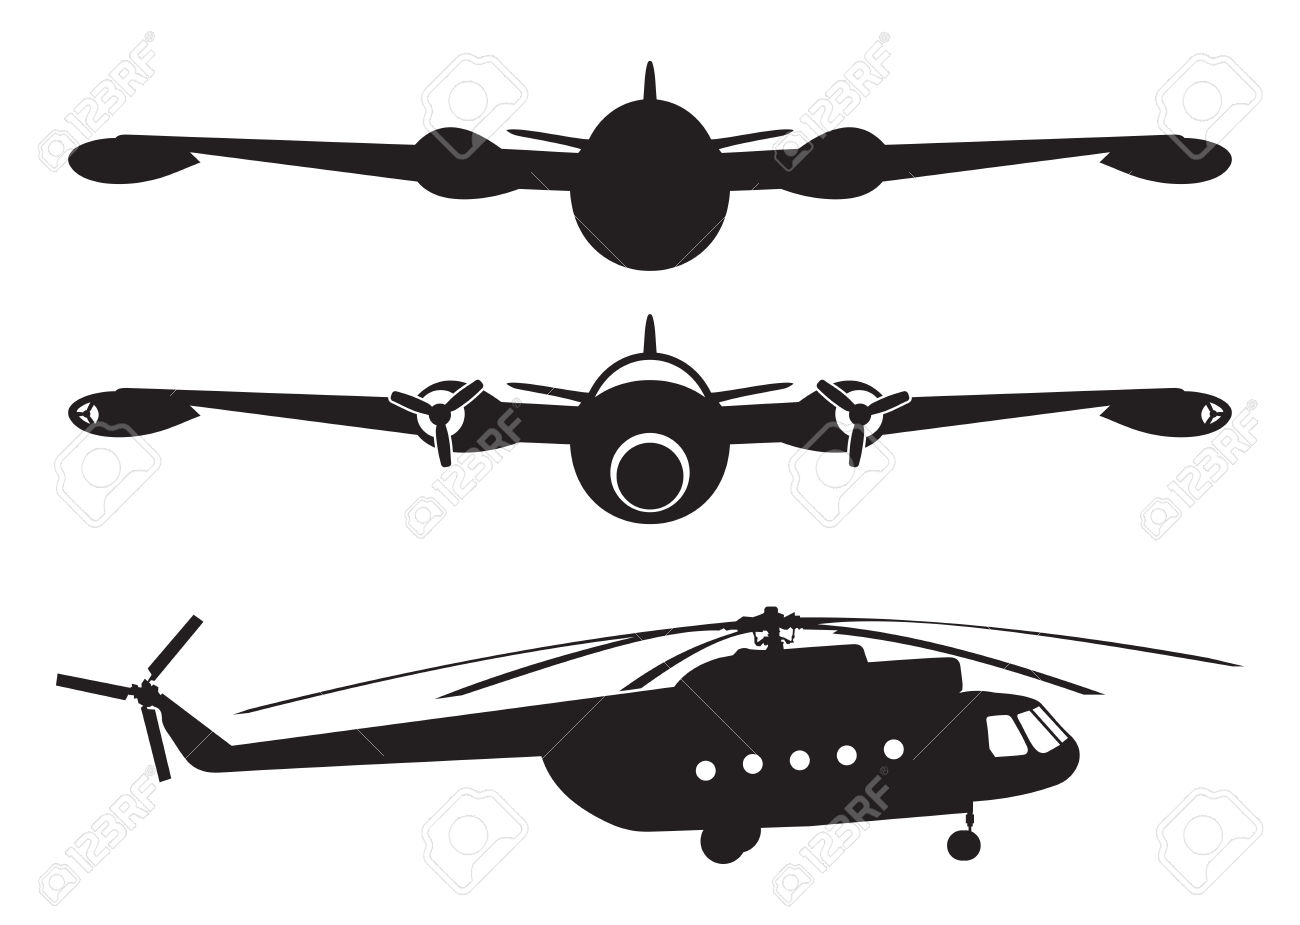 Airplane And Helicopter Silhouette Royalty Free Cliparts, Vectors.